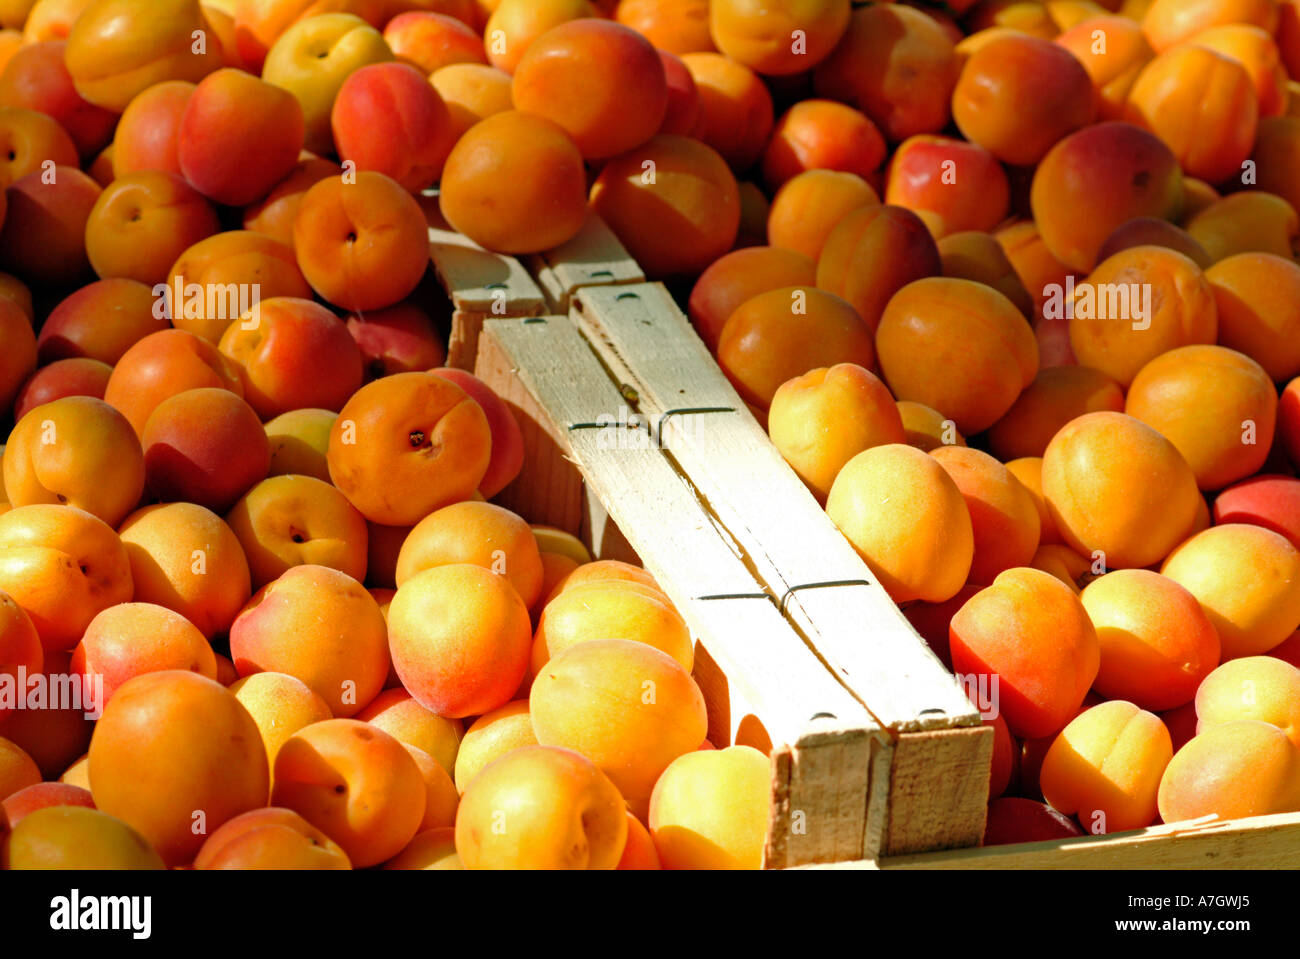 Wooden Fruit Boxes Filled With Apricots For Sale Stock Photo